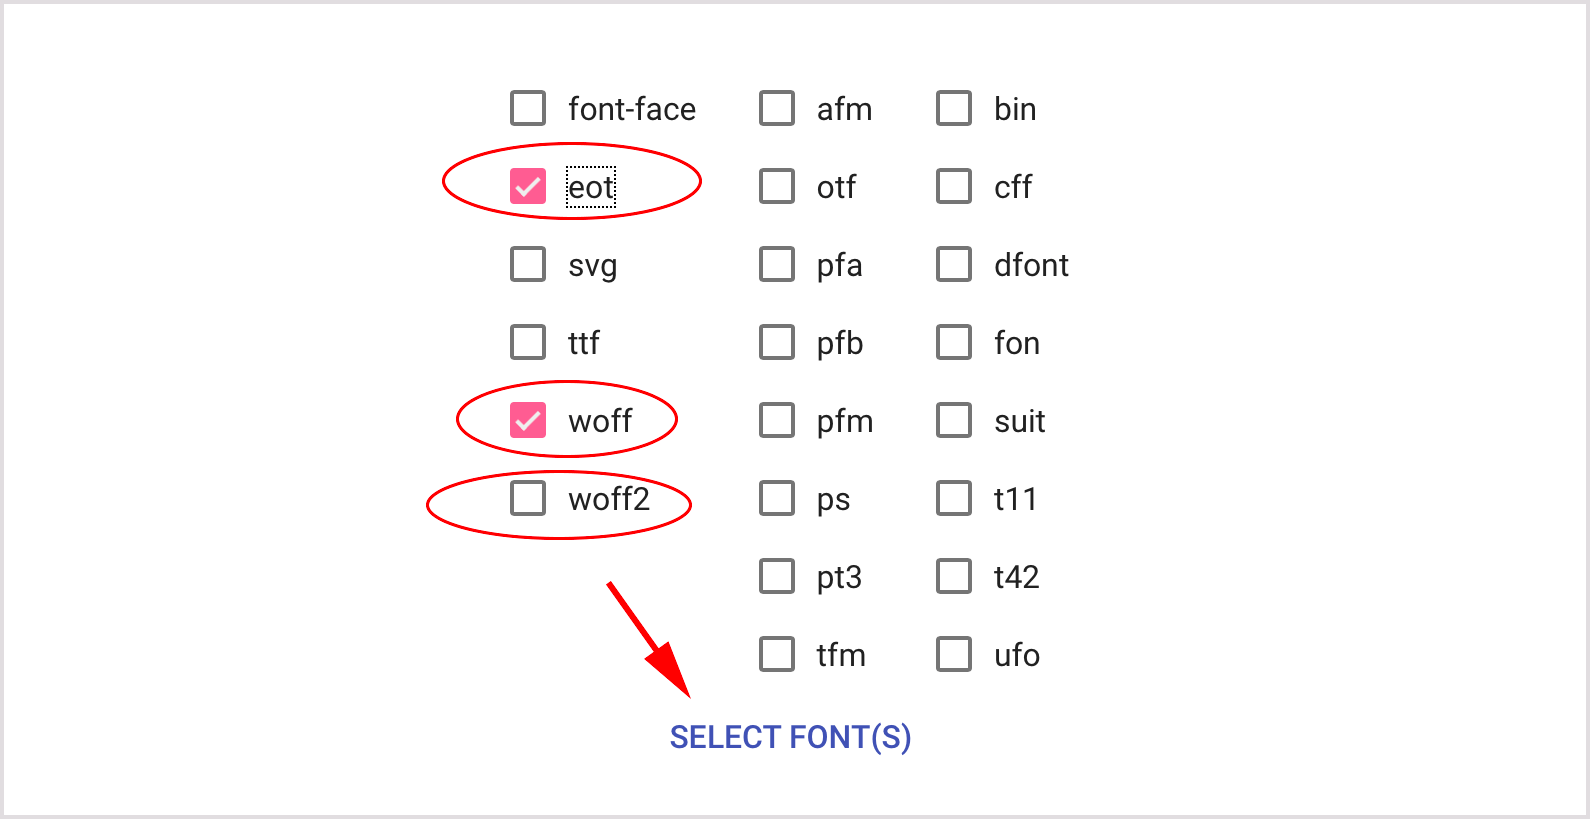 SELECT FONT(S)